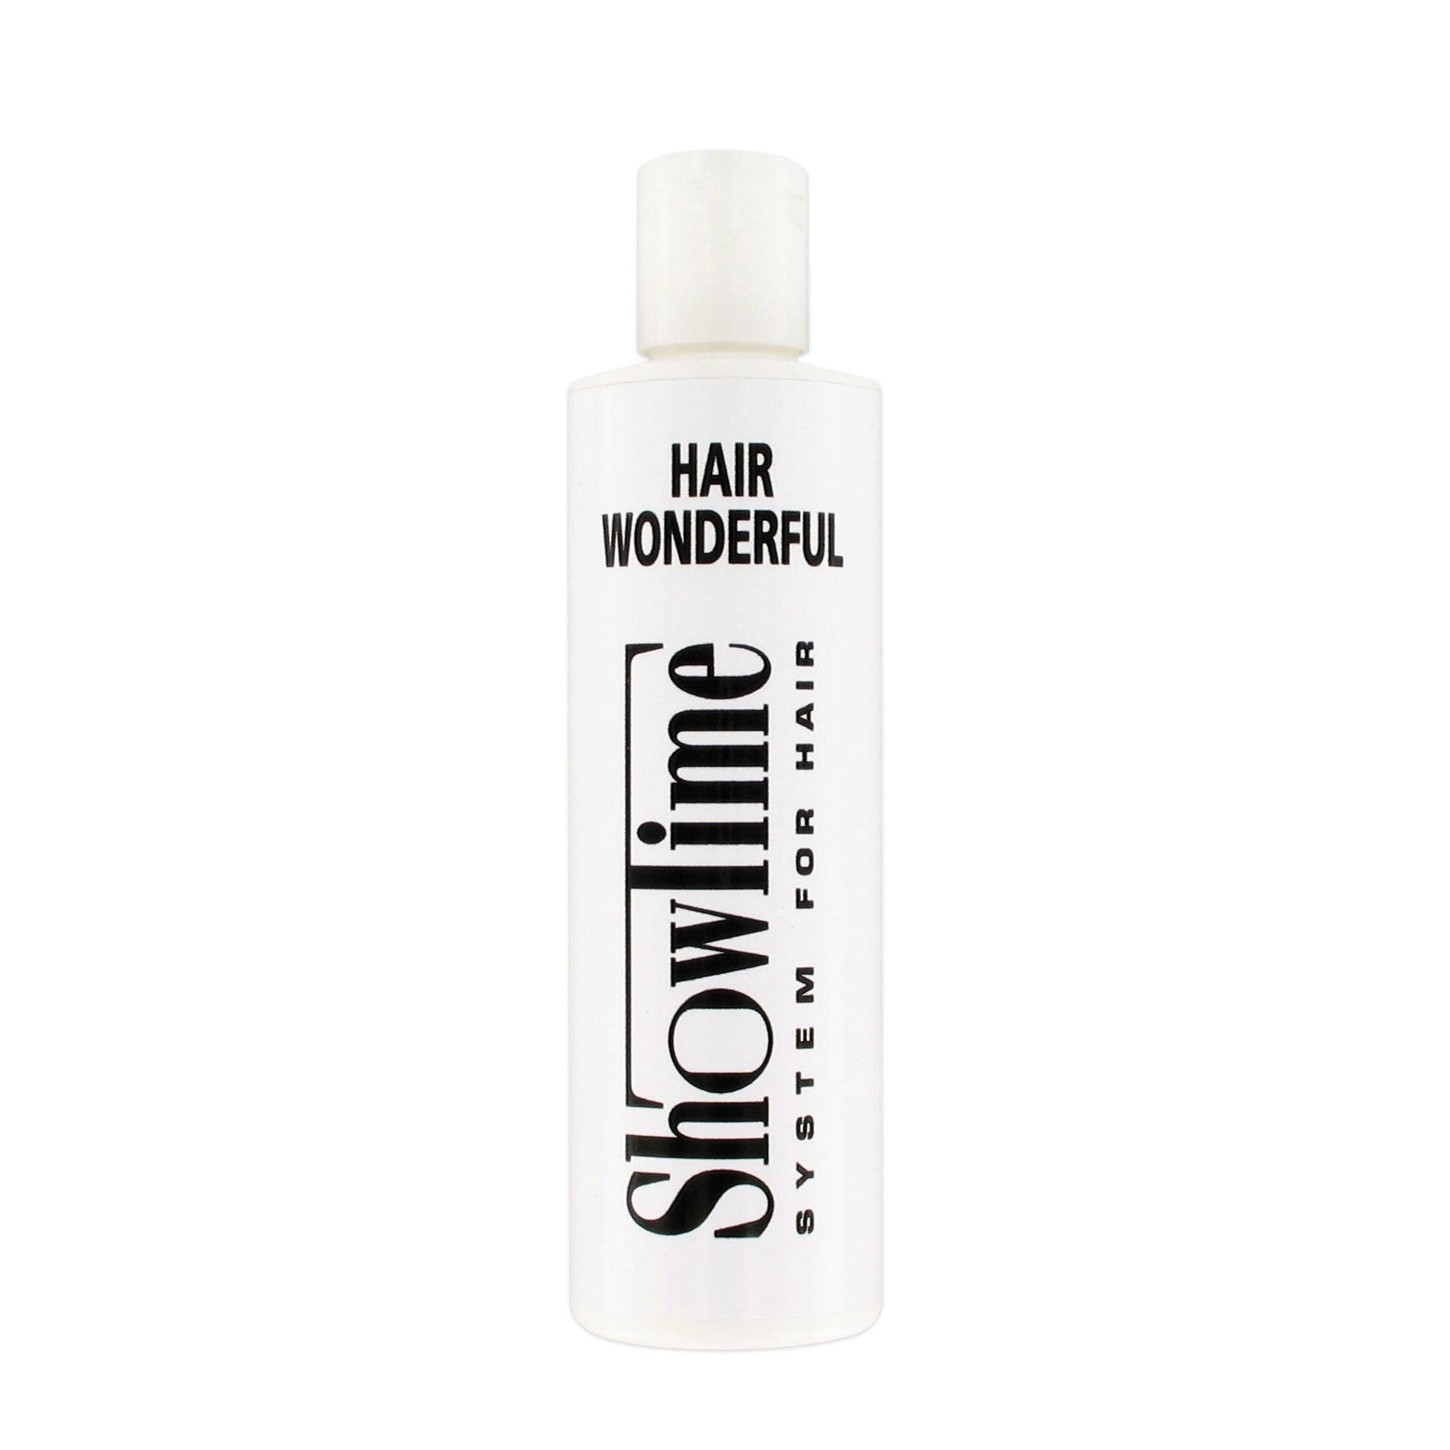 Showtime Hair Wonderful Leave-In Conditioner